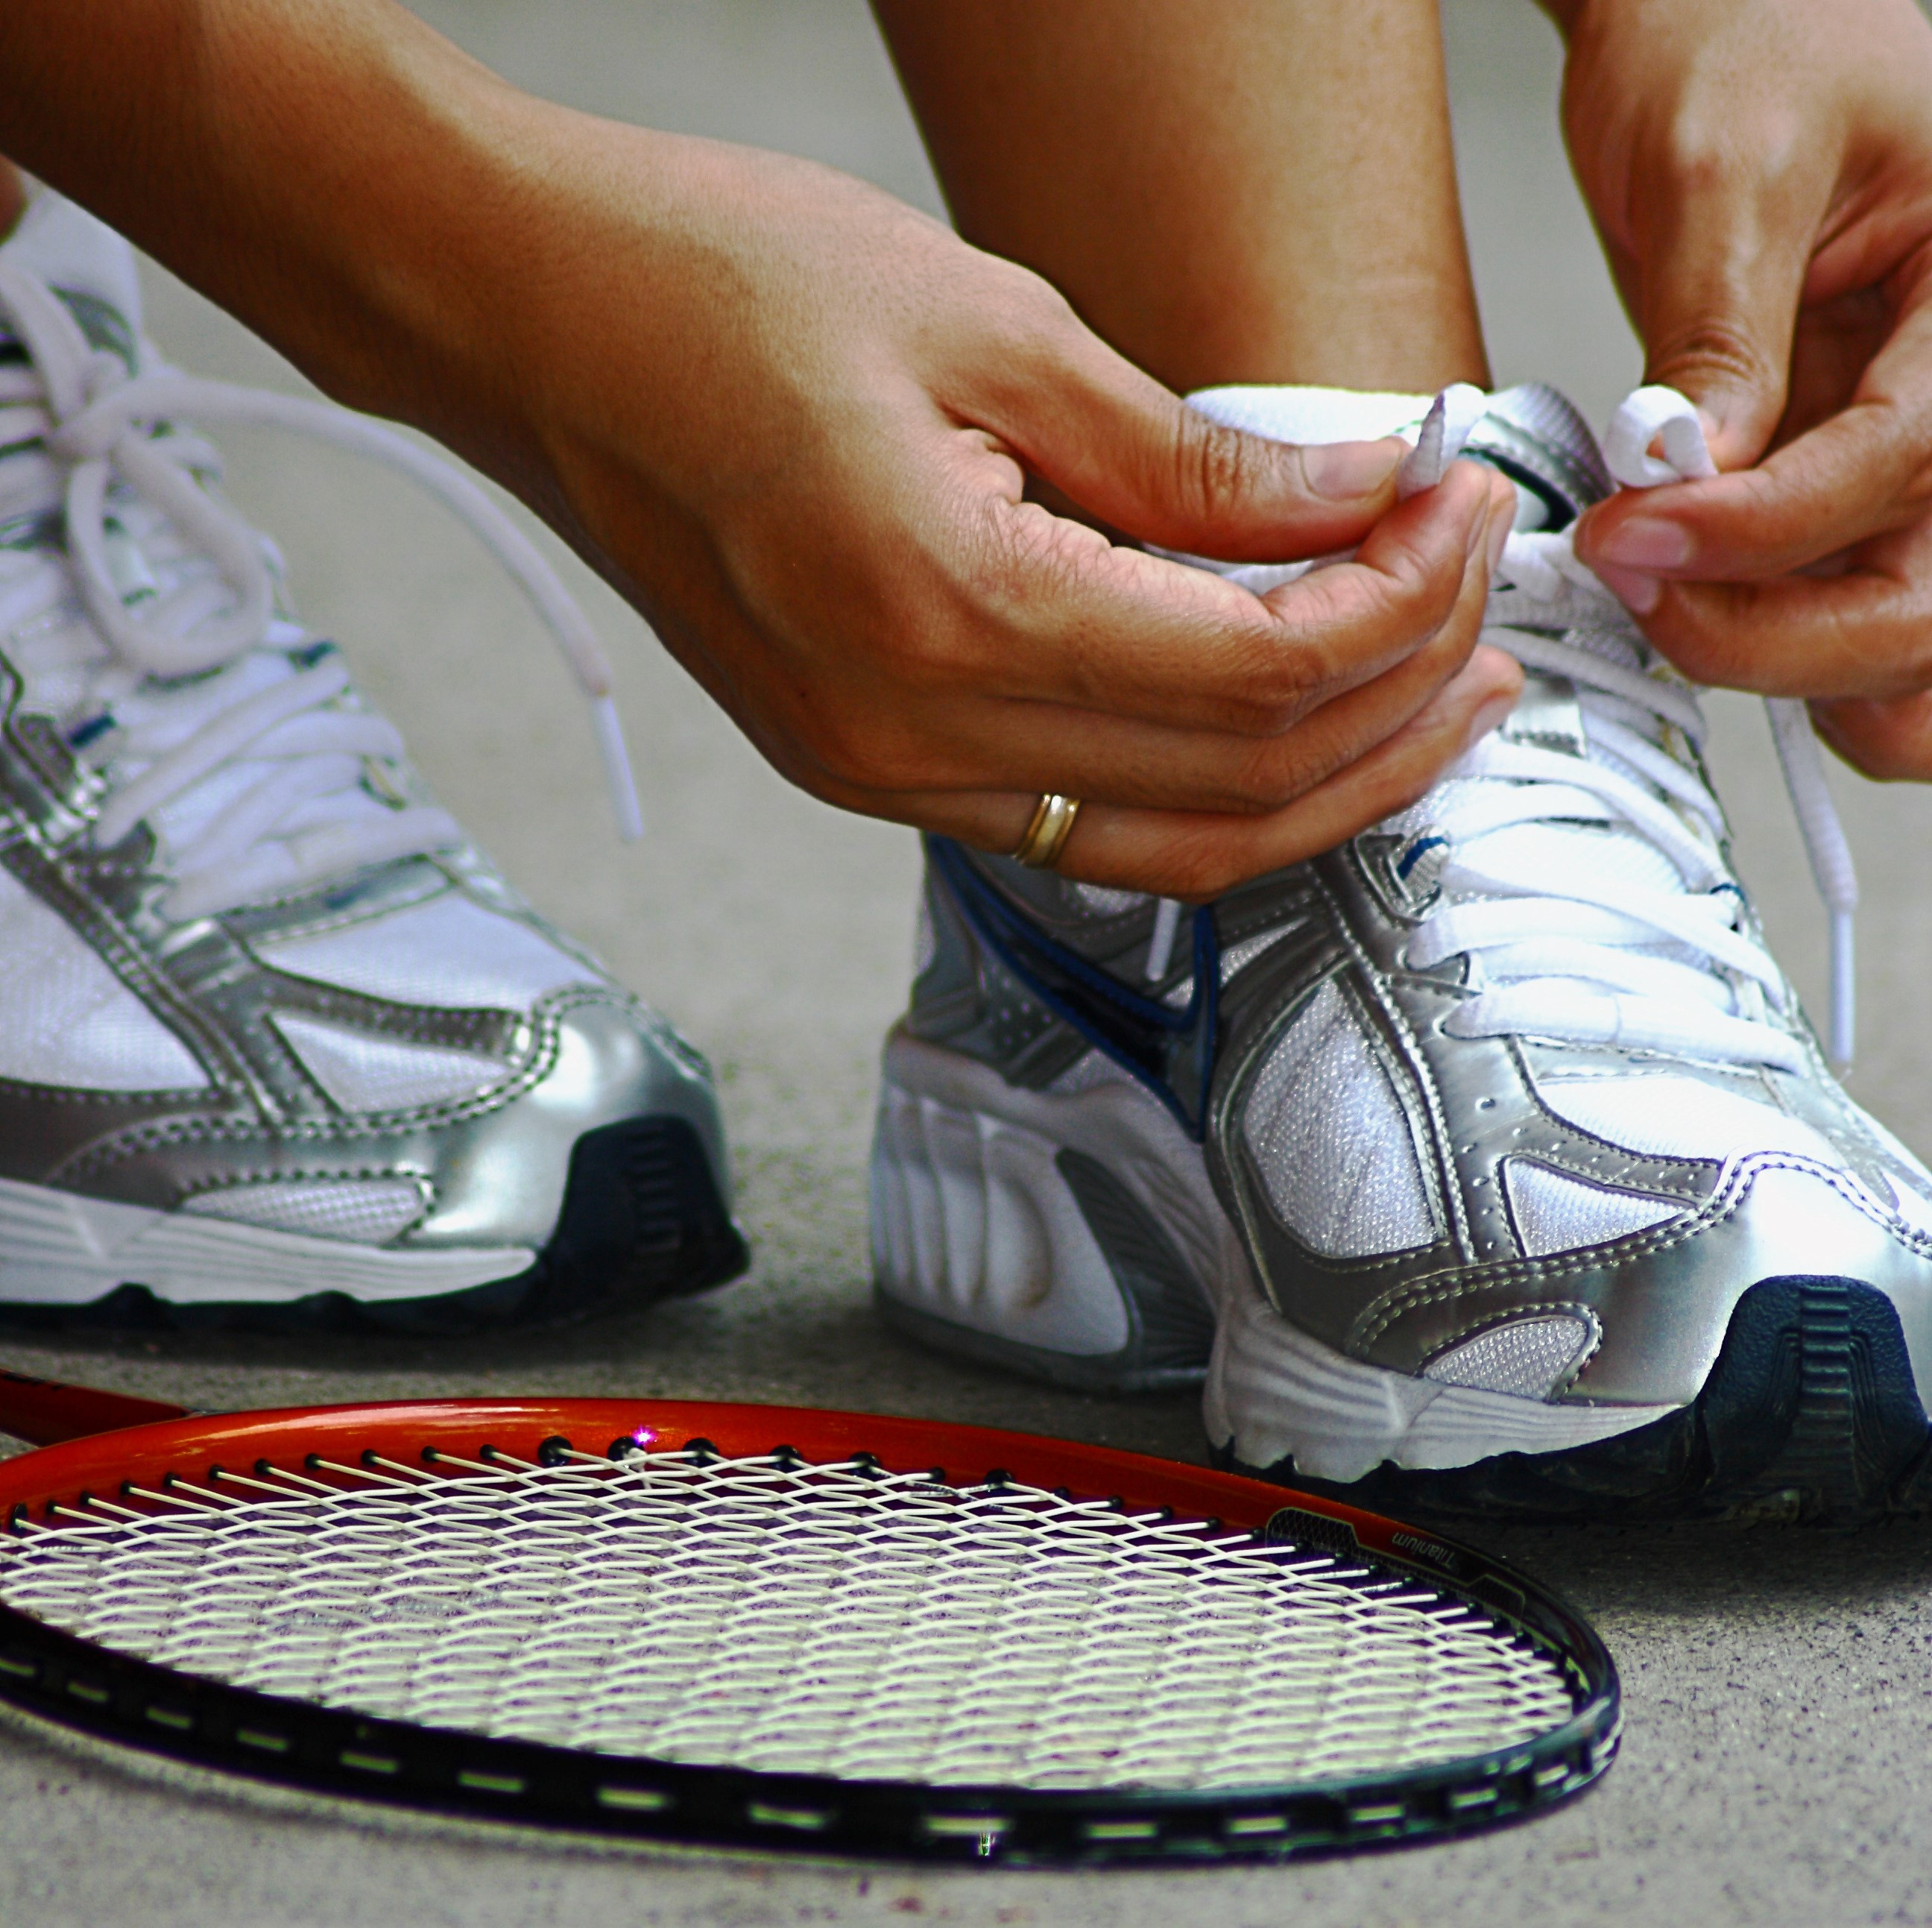 uploads/slider/20150923/tying-shoe-laces-ready-for-a-game-of-badminton_fJ2v3NDd.jpg